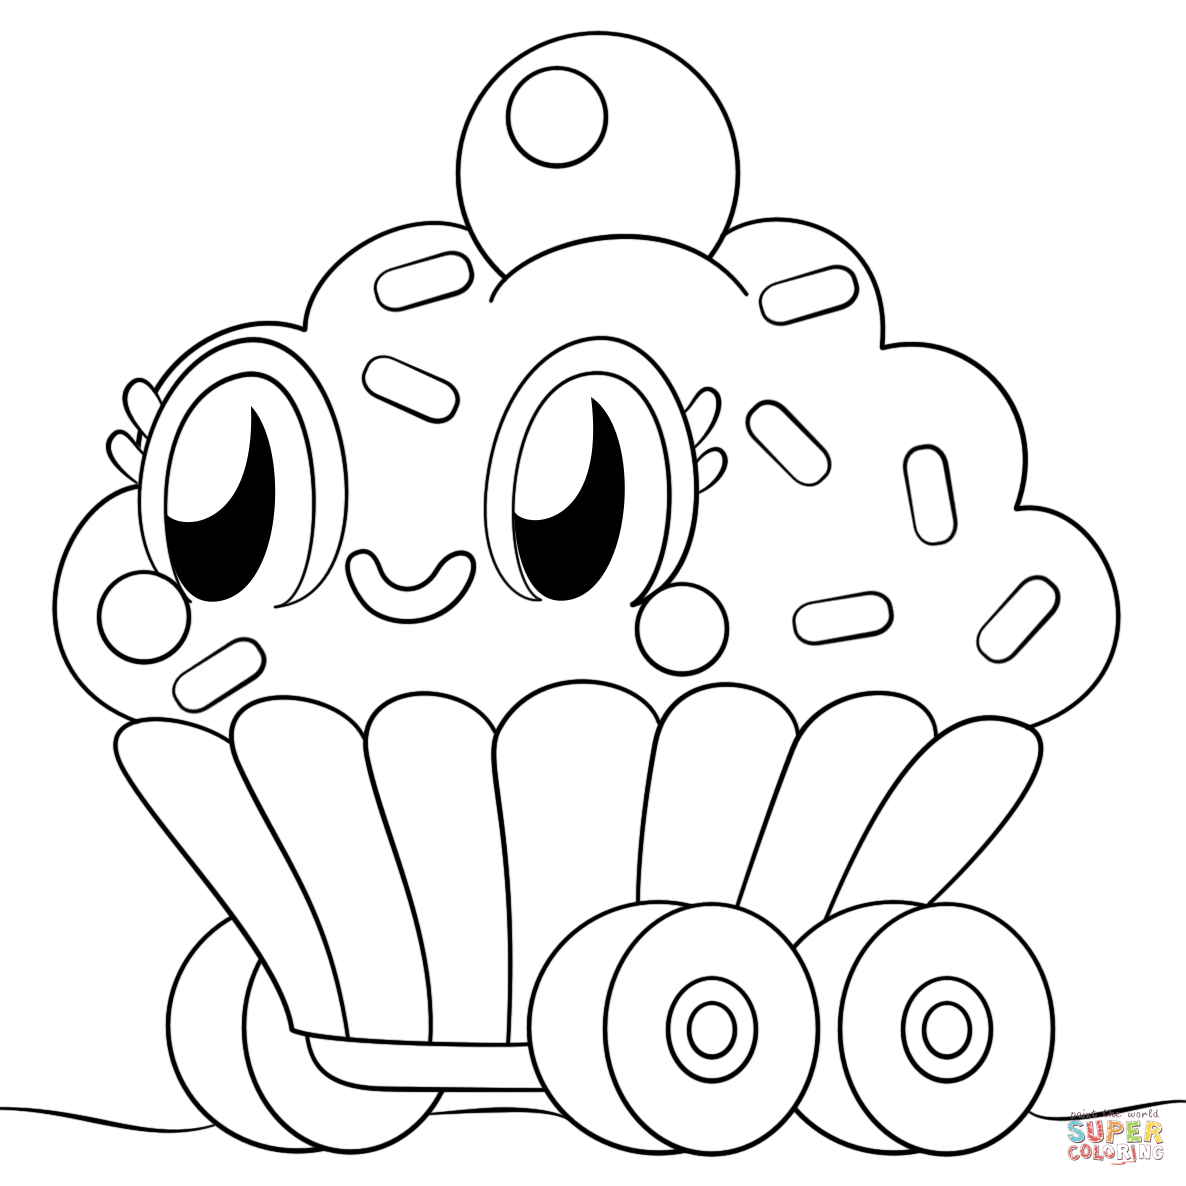 1186x1186 Willpower Moshi Monsters Coloring Pages Katsum